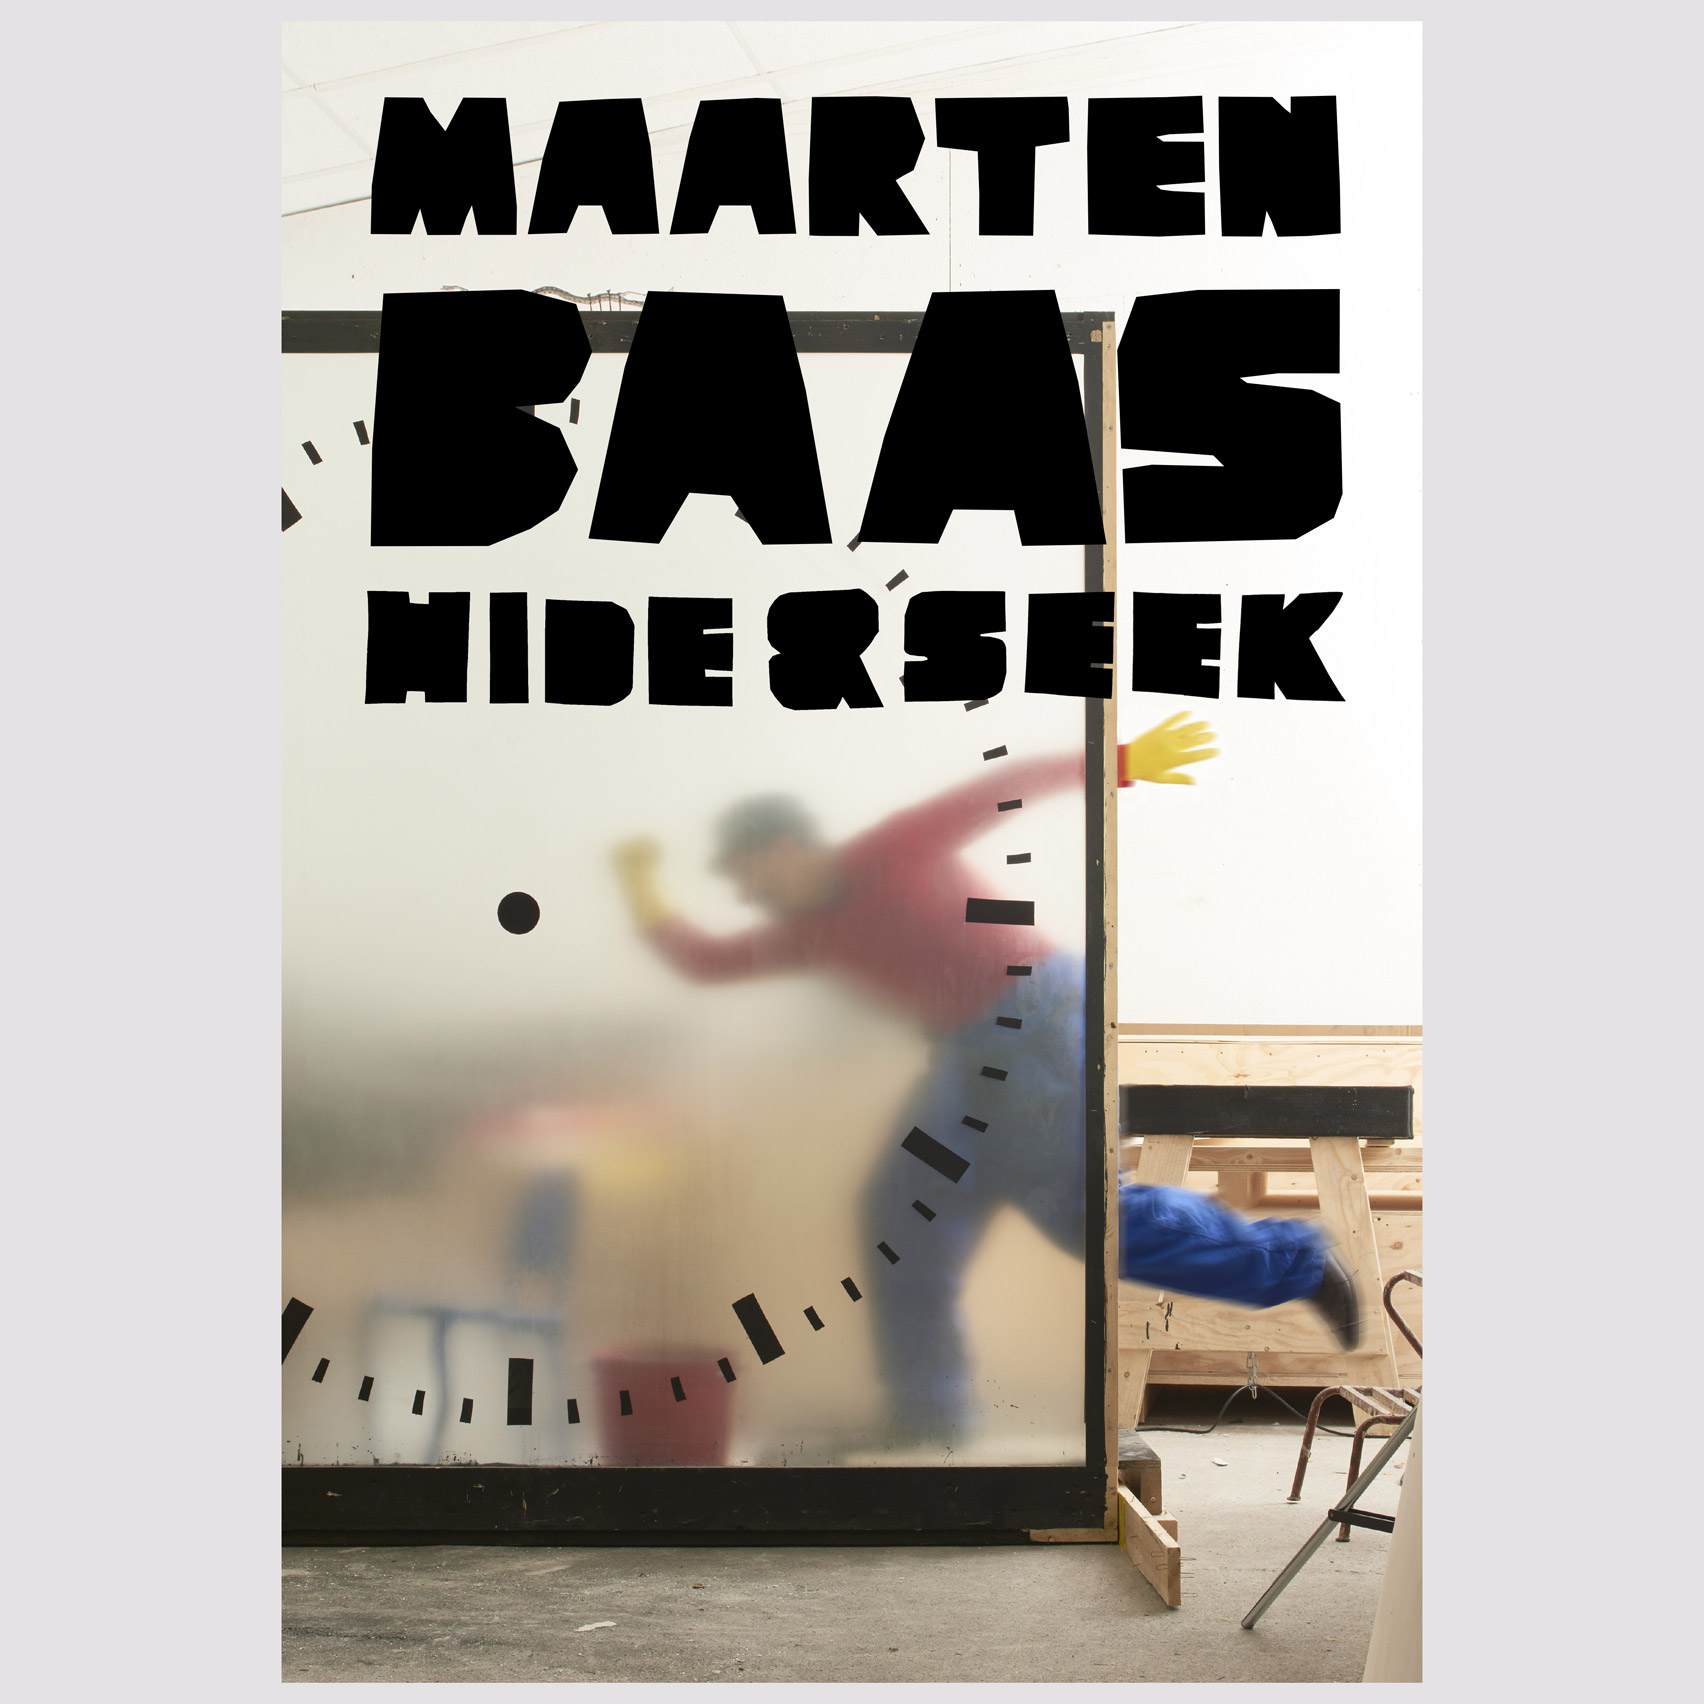 Competition Win A Book Documenting The Work Of Designer Maarten Baas